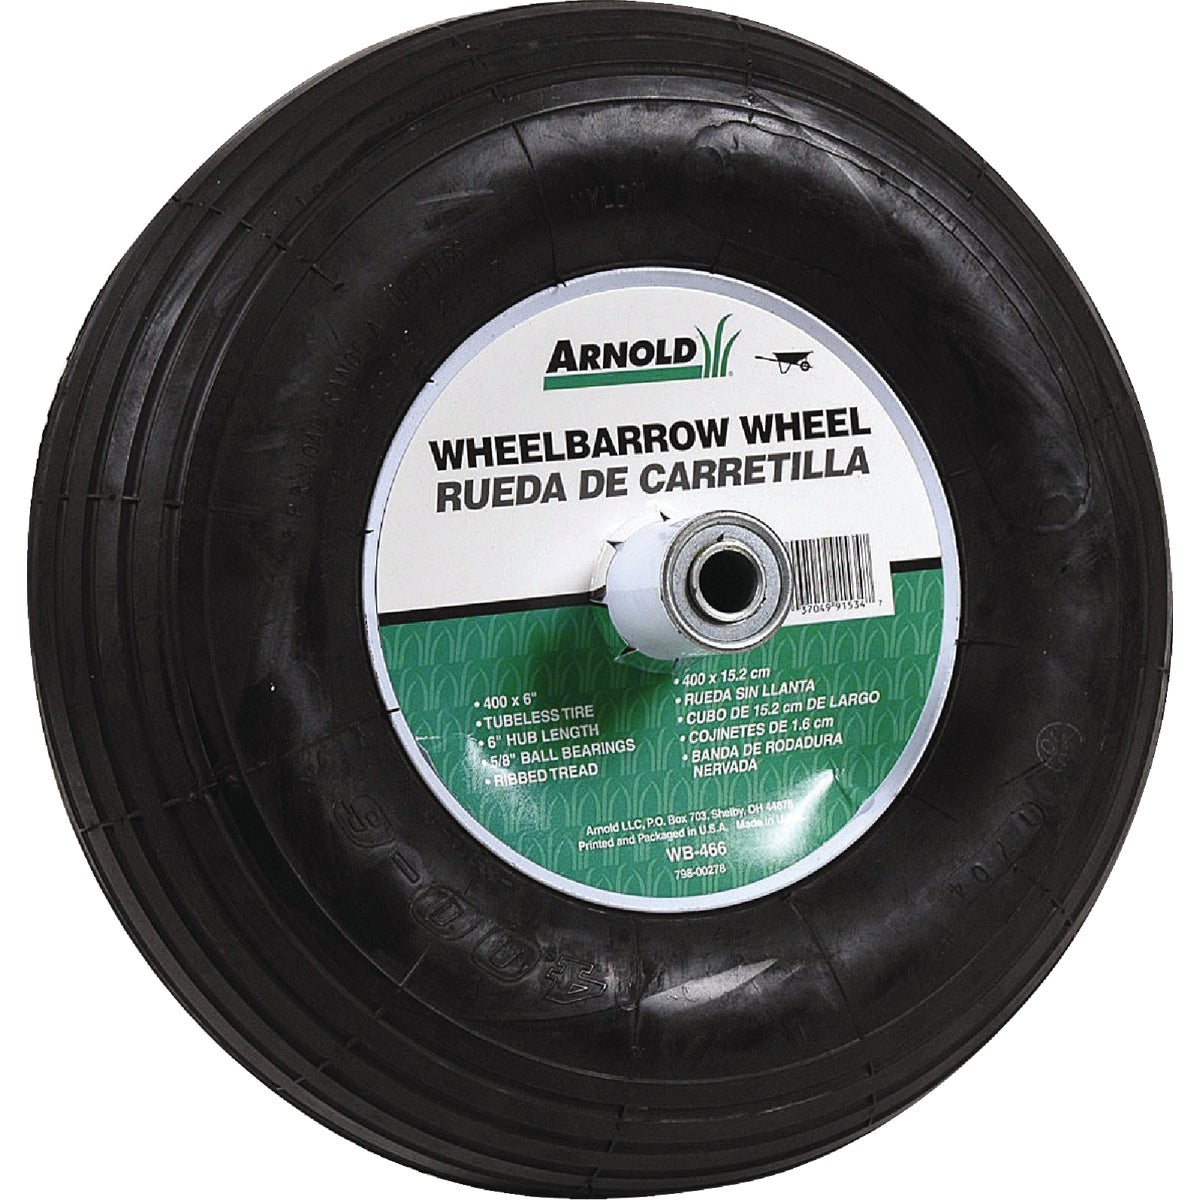 4.00X6 WHEELBARROW WHEEL